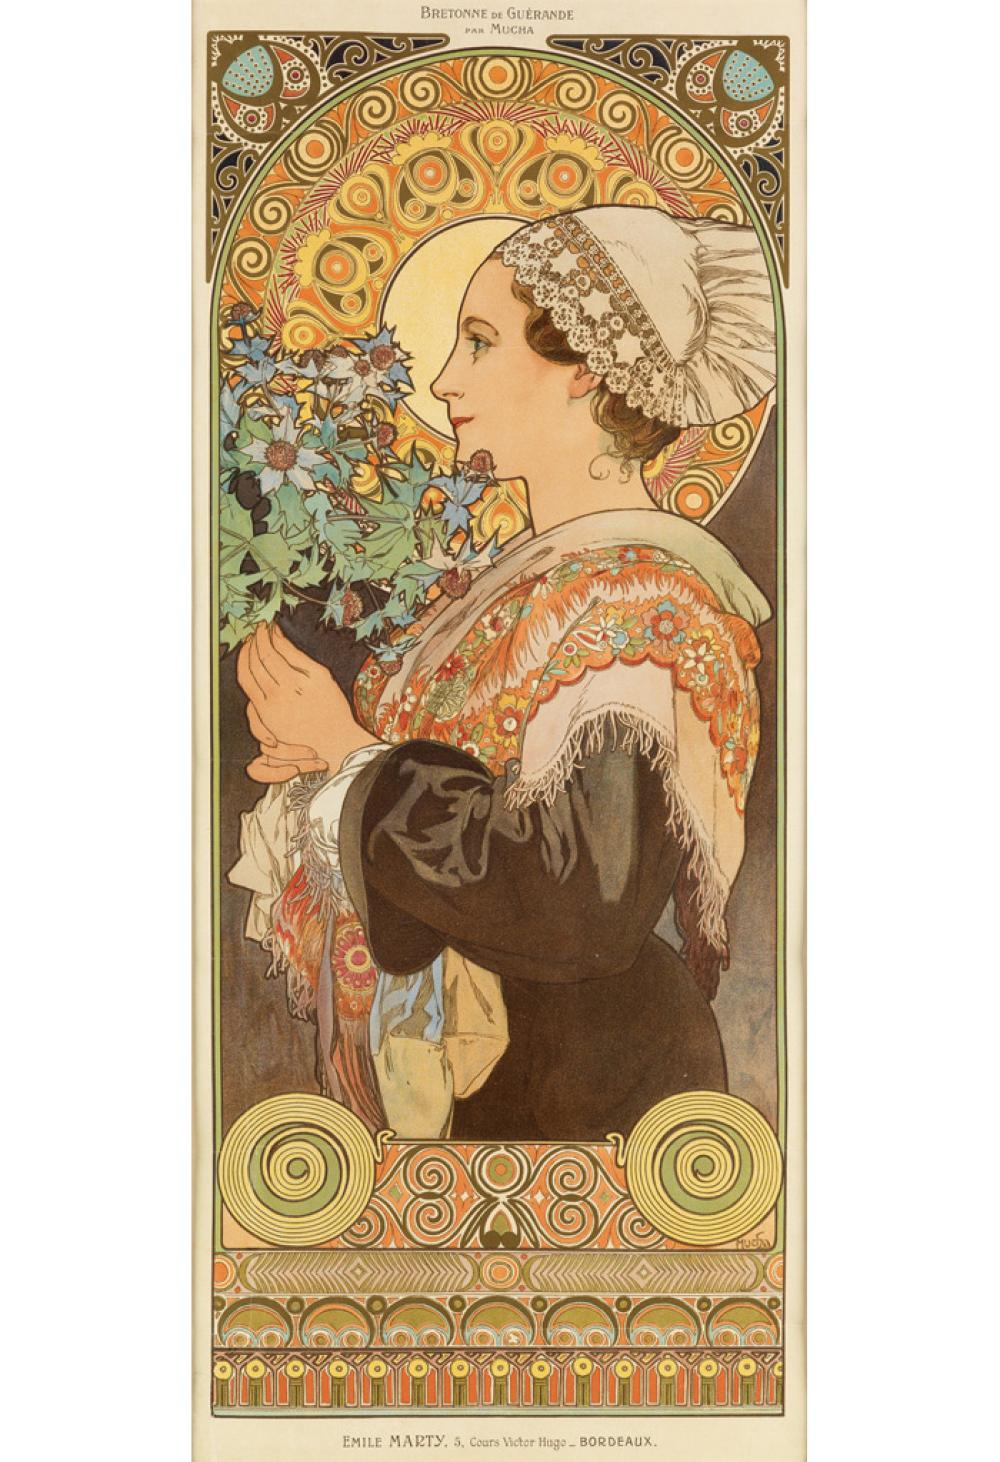 ALPHONSE MUCHA (1860-1939). BRETONNE DE GUÉRANDE PAR MUCHA / [SEA HOLLY.] 1902. 27x11 inches, 69x29 cm. [F. Champenois, Paris].